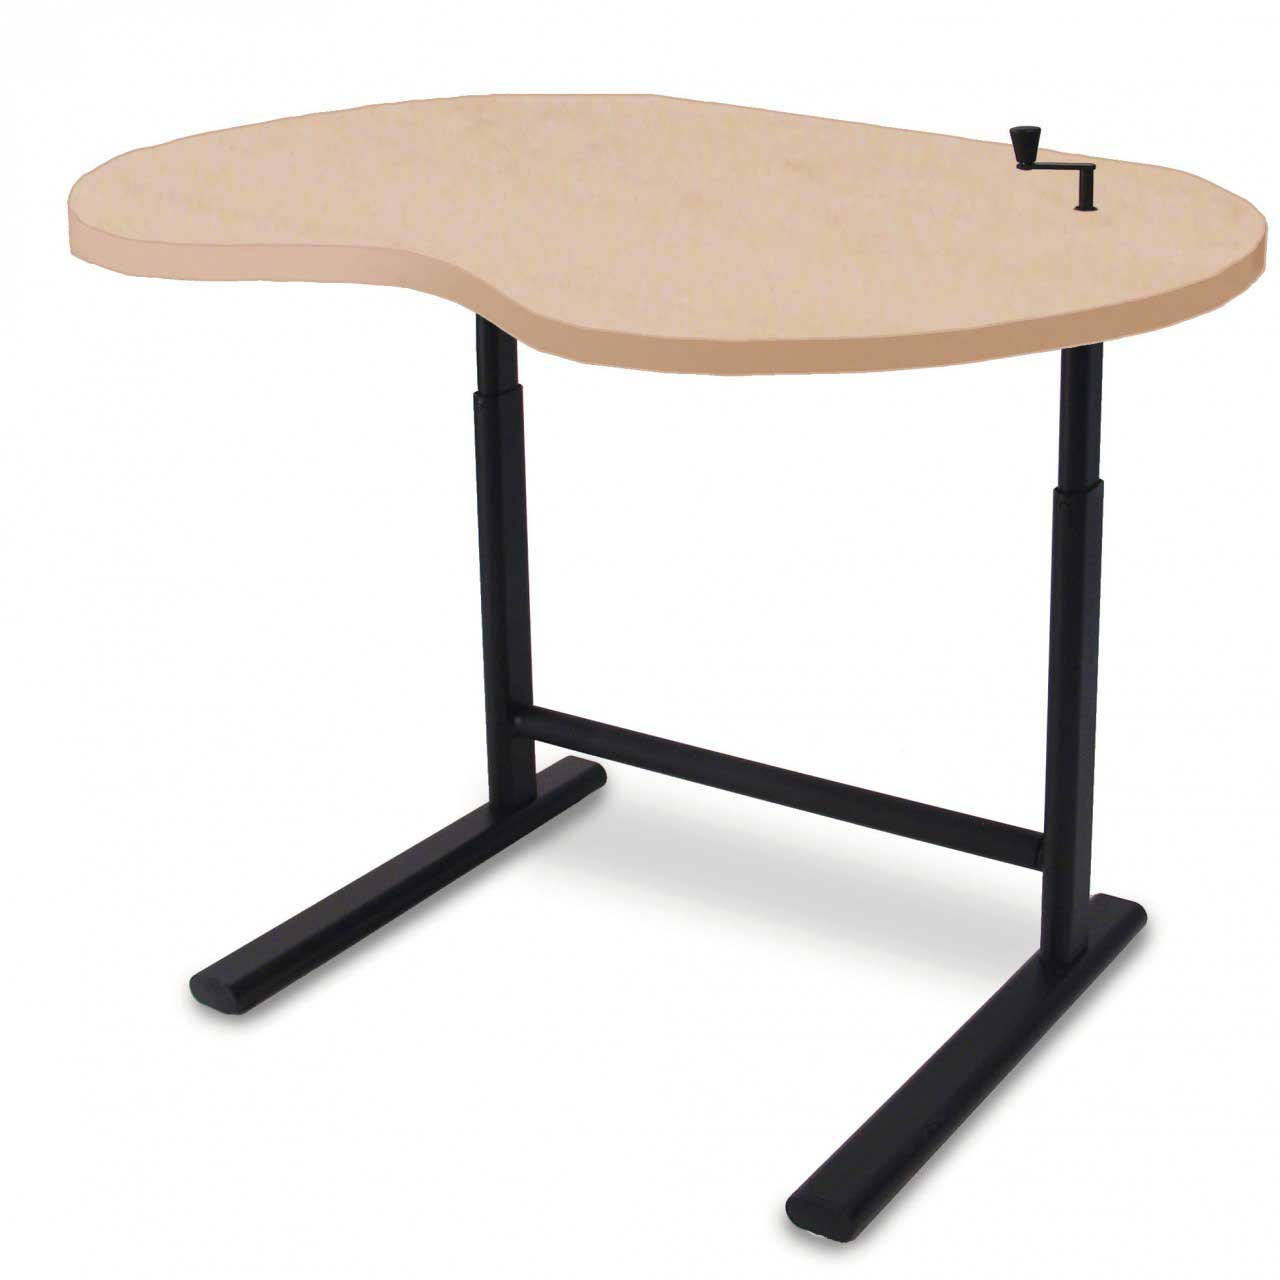 Beautiful Laptop Desk Stand for Work Space or Office: Astonishing Laptop Desk Stand With Aluminium Feet With Roll For Work Space Or Office Furniture Ideas